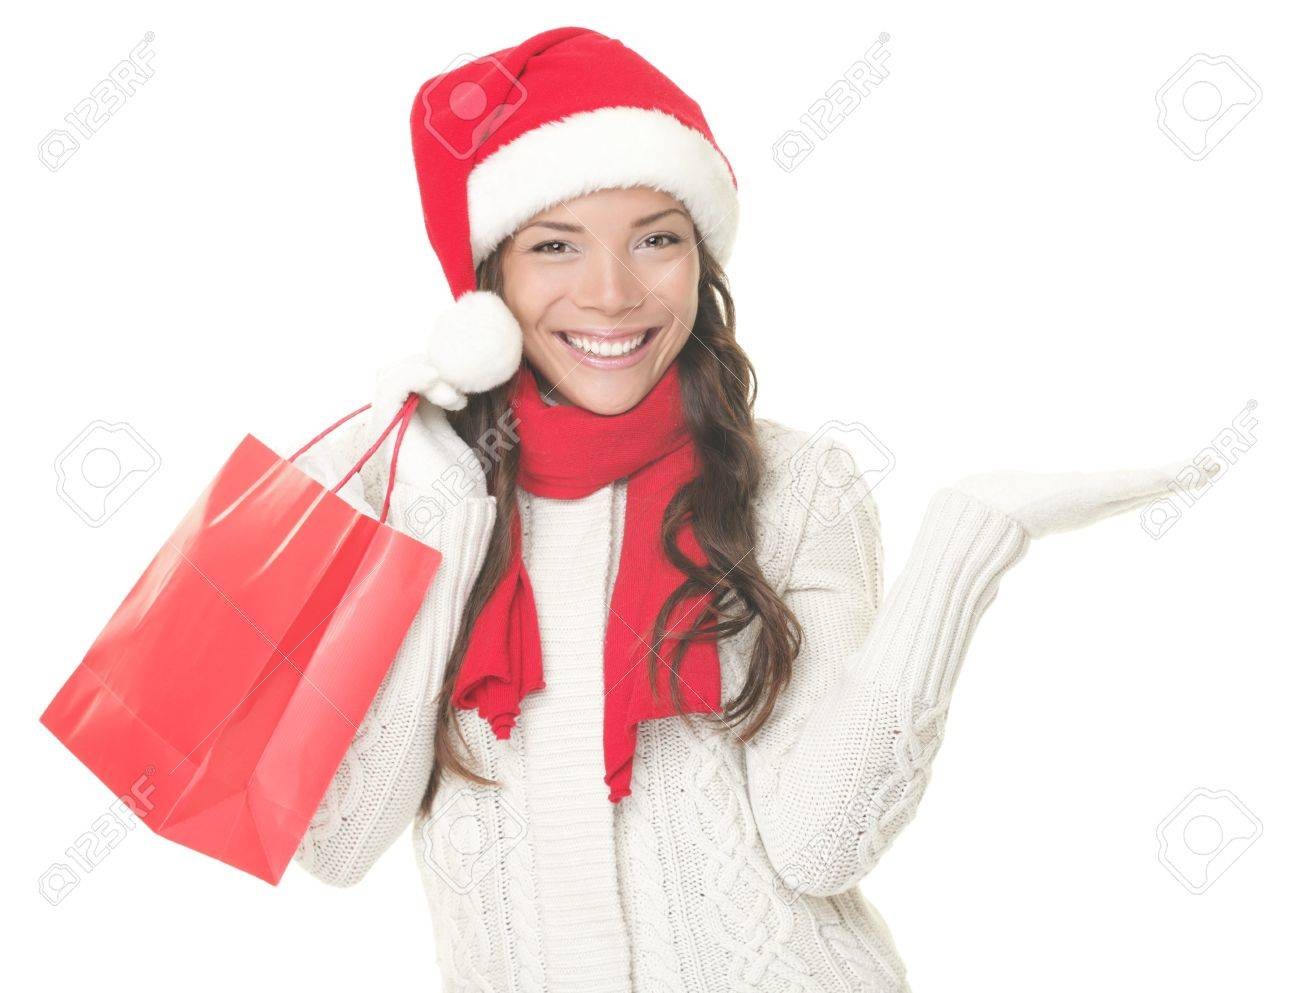 Christmas shopping woman presenting copy space. Excited santa girl showing your product or text looking sideways on copyspace with open hand palm. Closeup of mixed Asian Caucasian female model isolated on white background. Stock Photo - 8049696